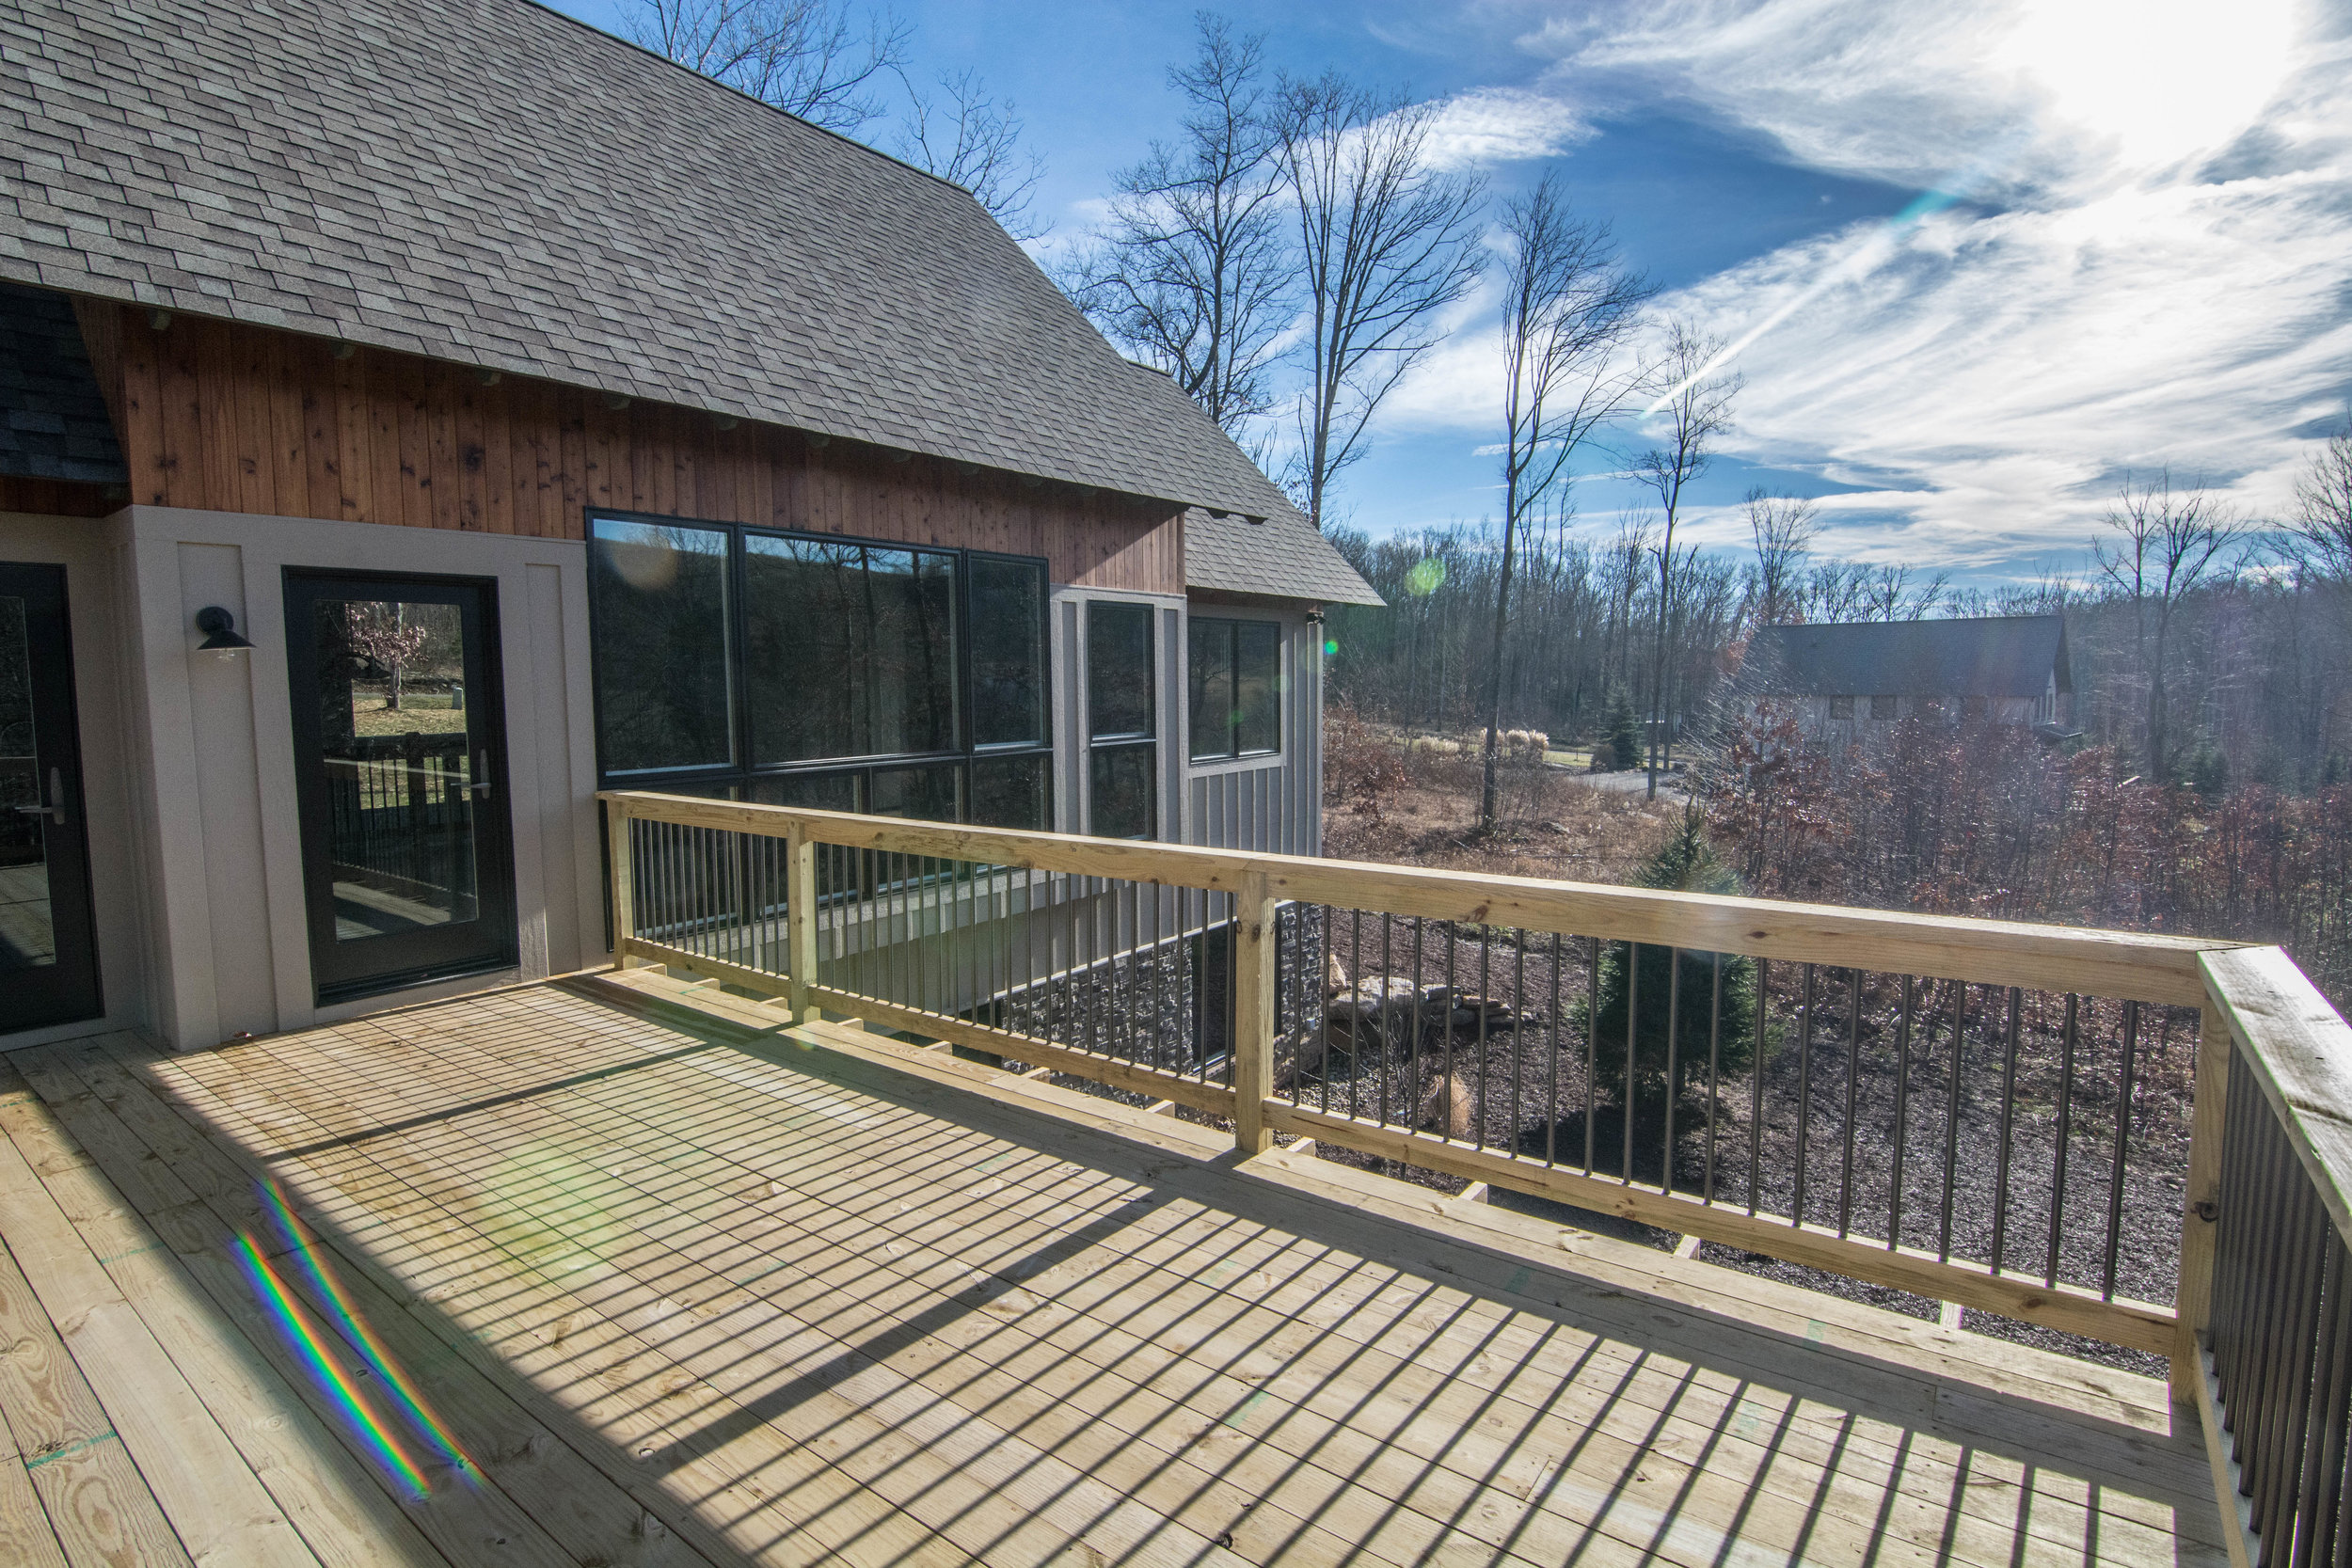 gosnell_builders_home_for_sale_ridgeview_valley05.jpg